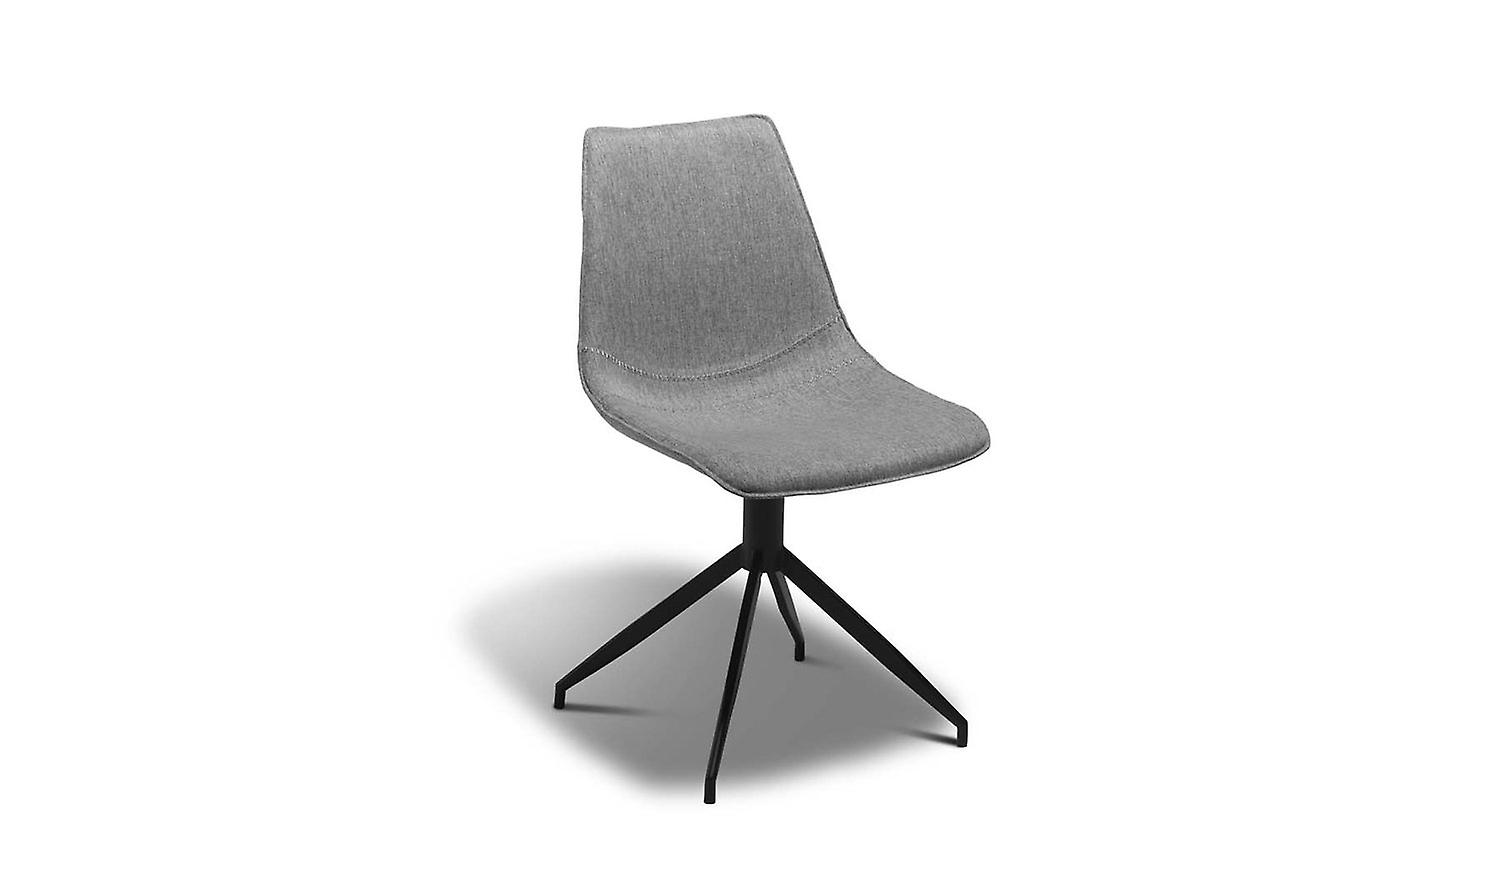 Superb Furnhouse Isabel Dining Chair Light Grey Metal Base 48X57X85 Cm Set Of 2 Ncnpc Chair Design For Home Ncnpcorg